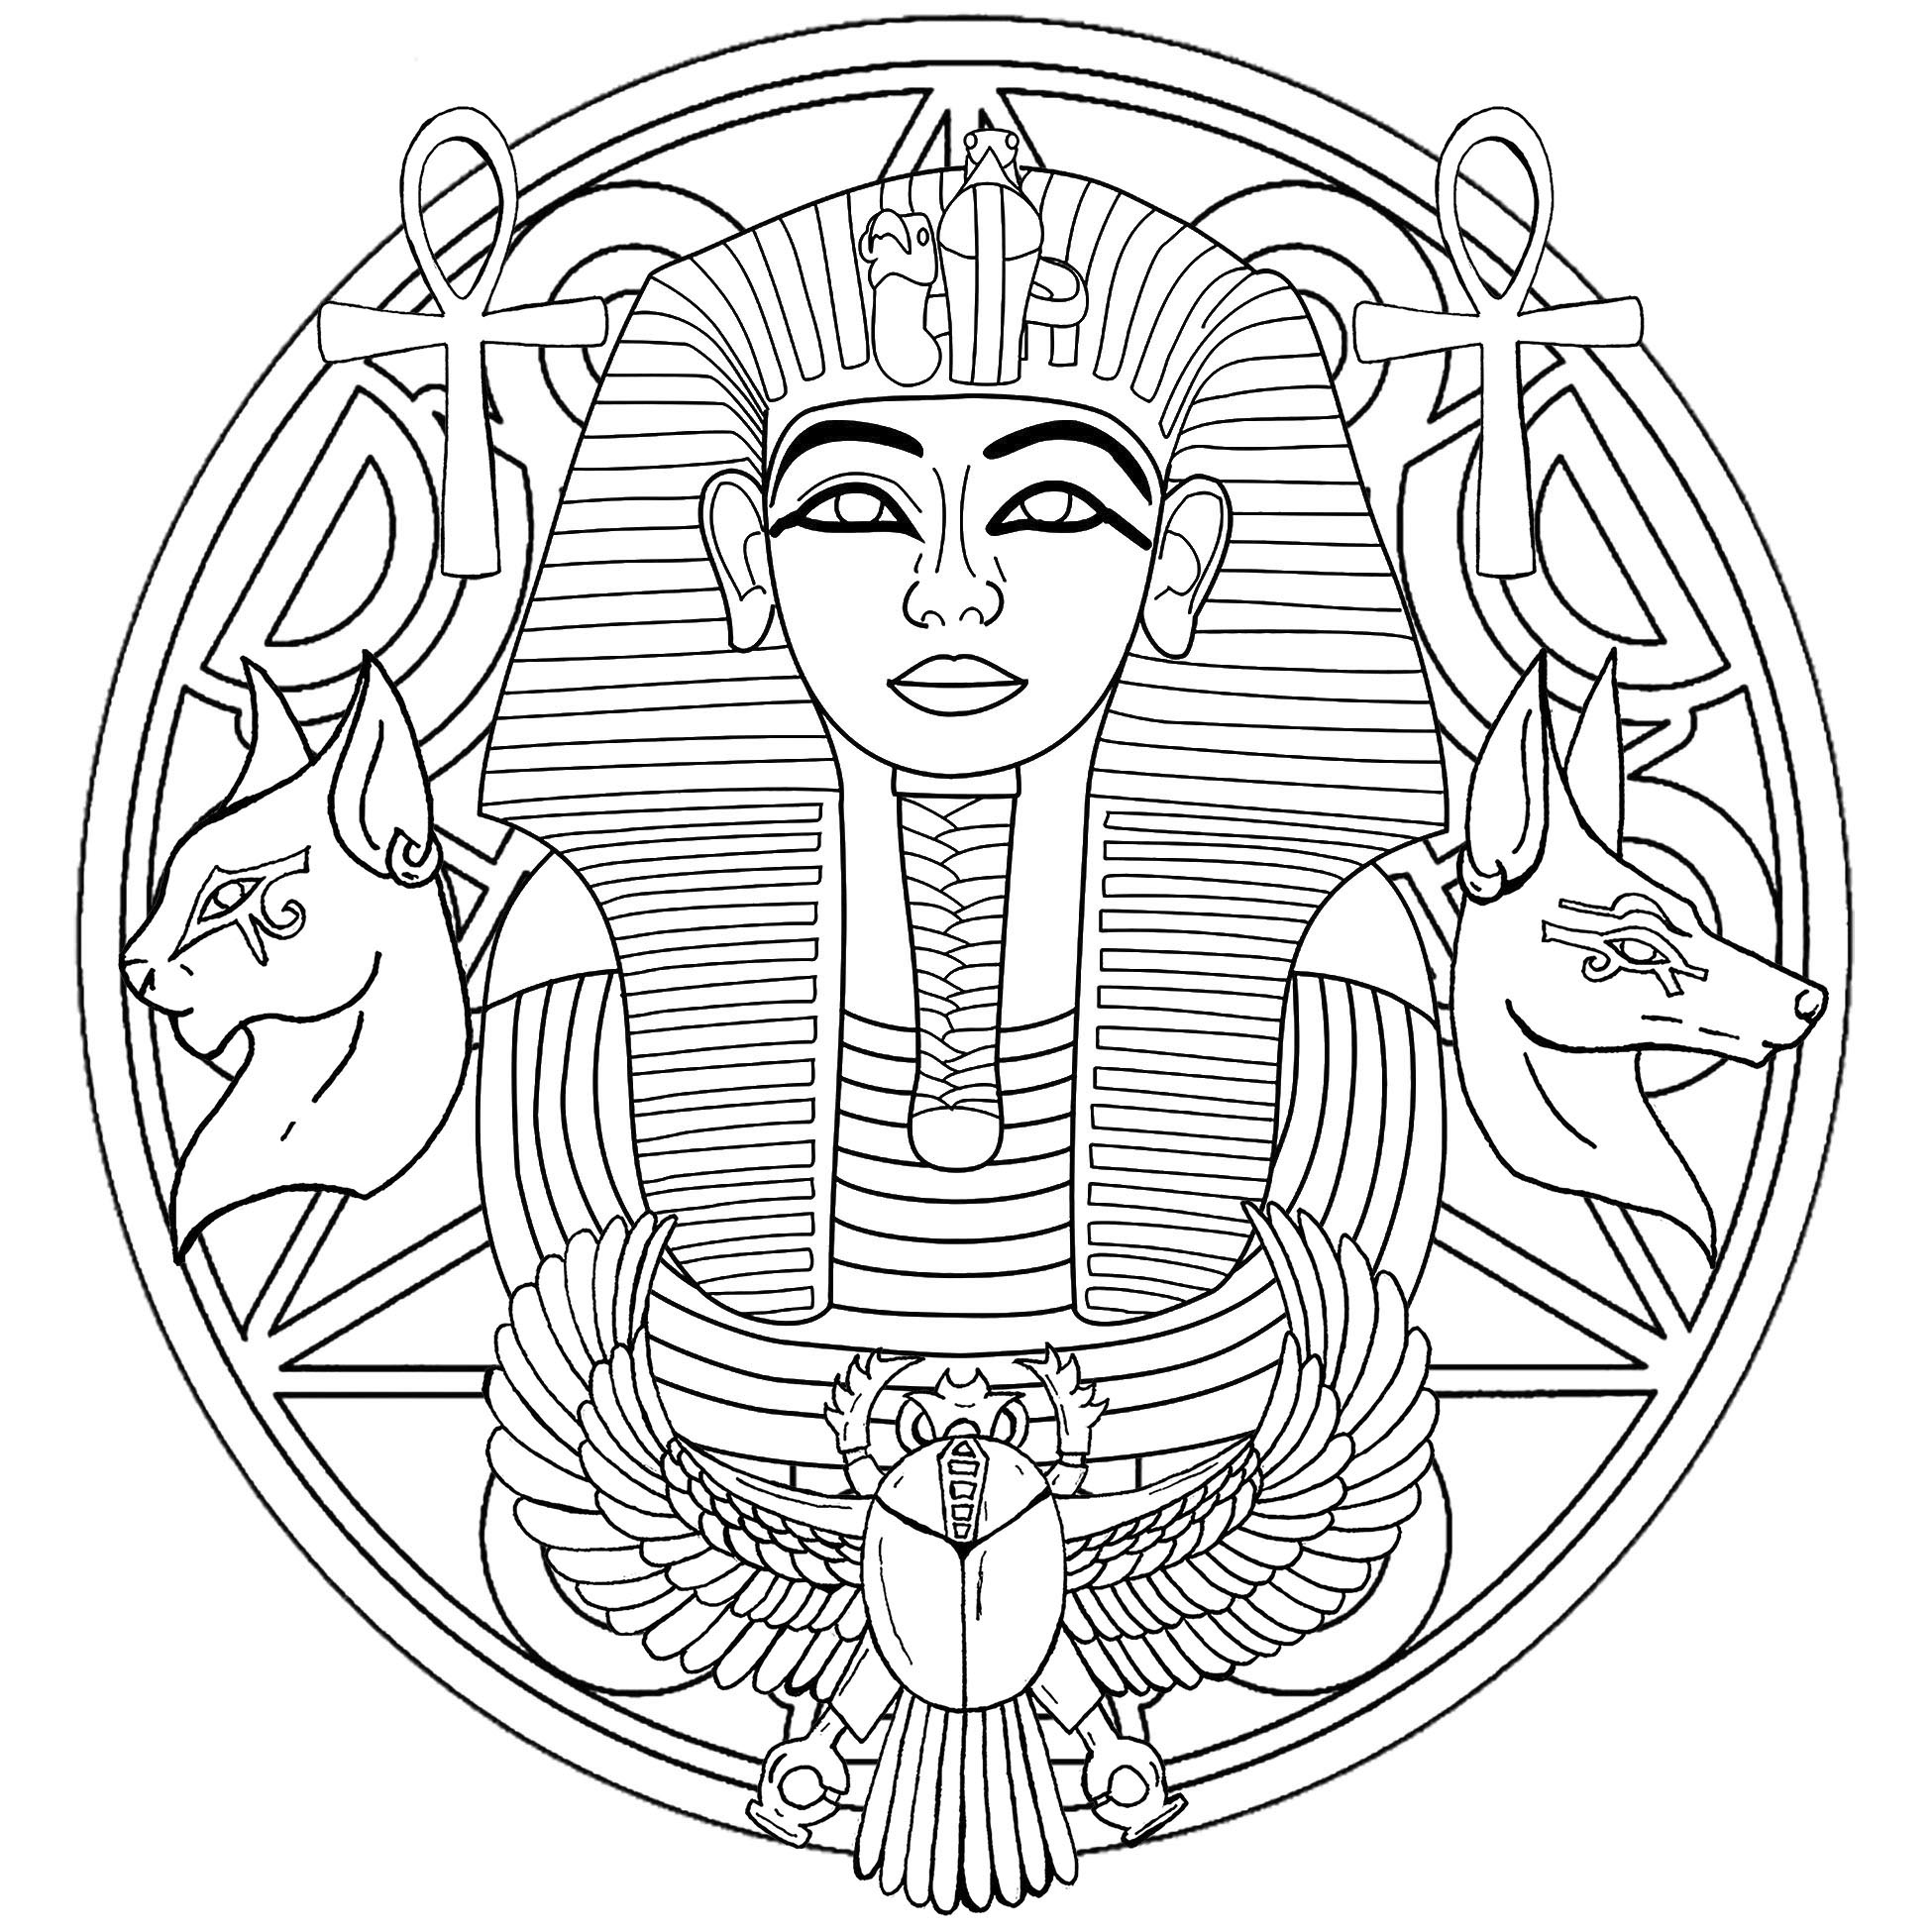 Tutankhamun was an Egyptian pharaoh of the 18th dynasty during the period of Egyptian. Discover a Mandala with his famous mask in the center, and other symbols around. Second version